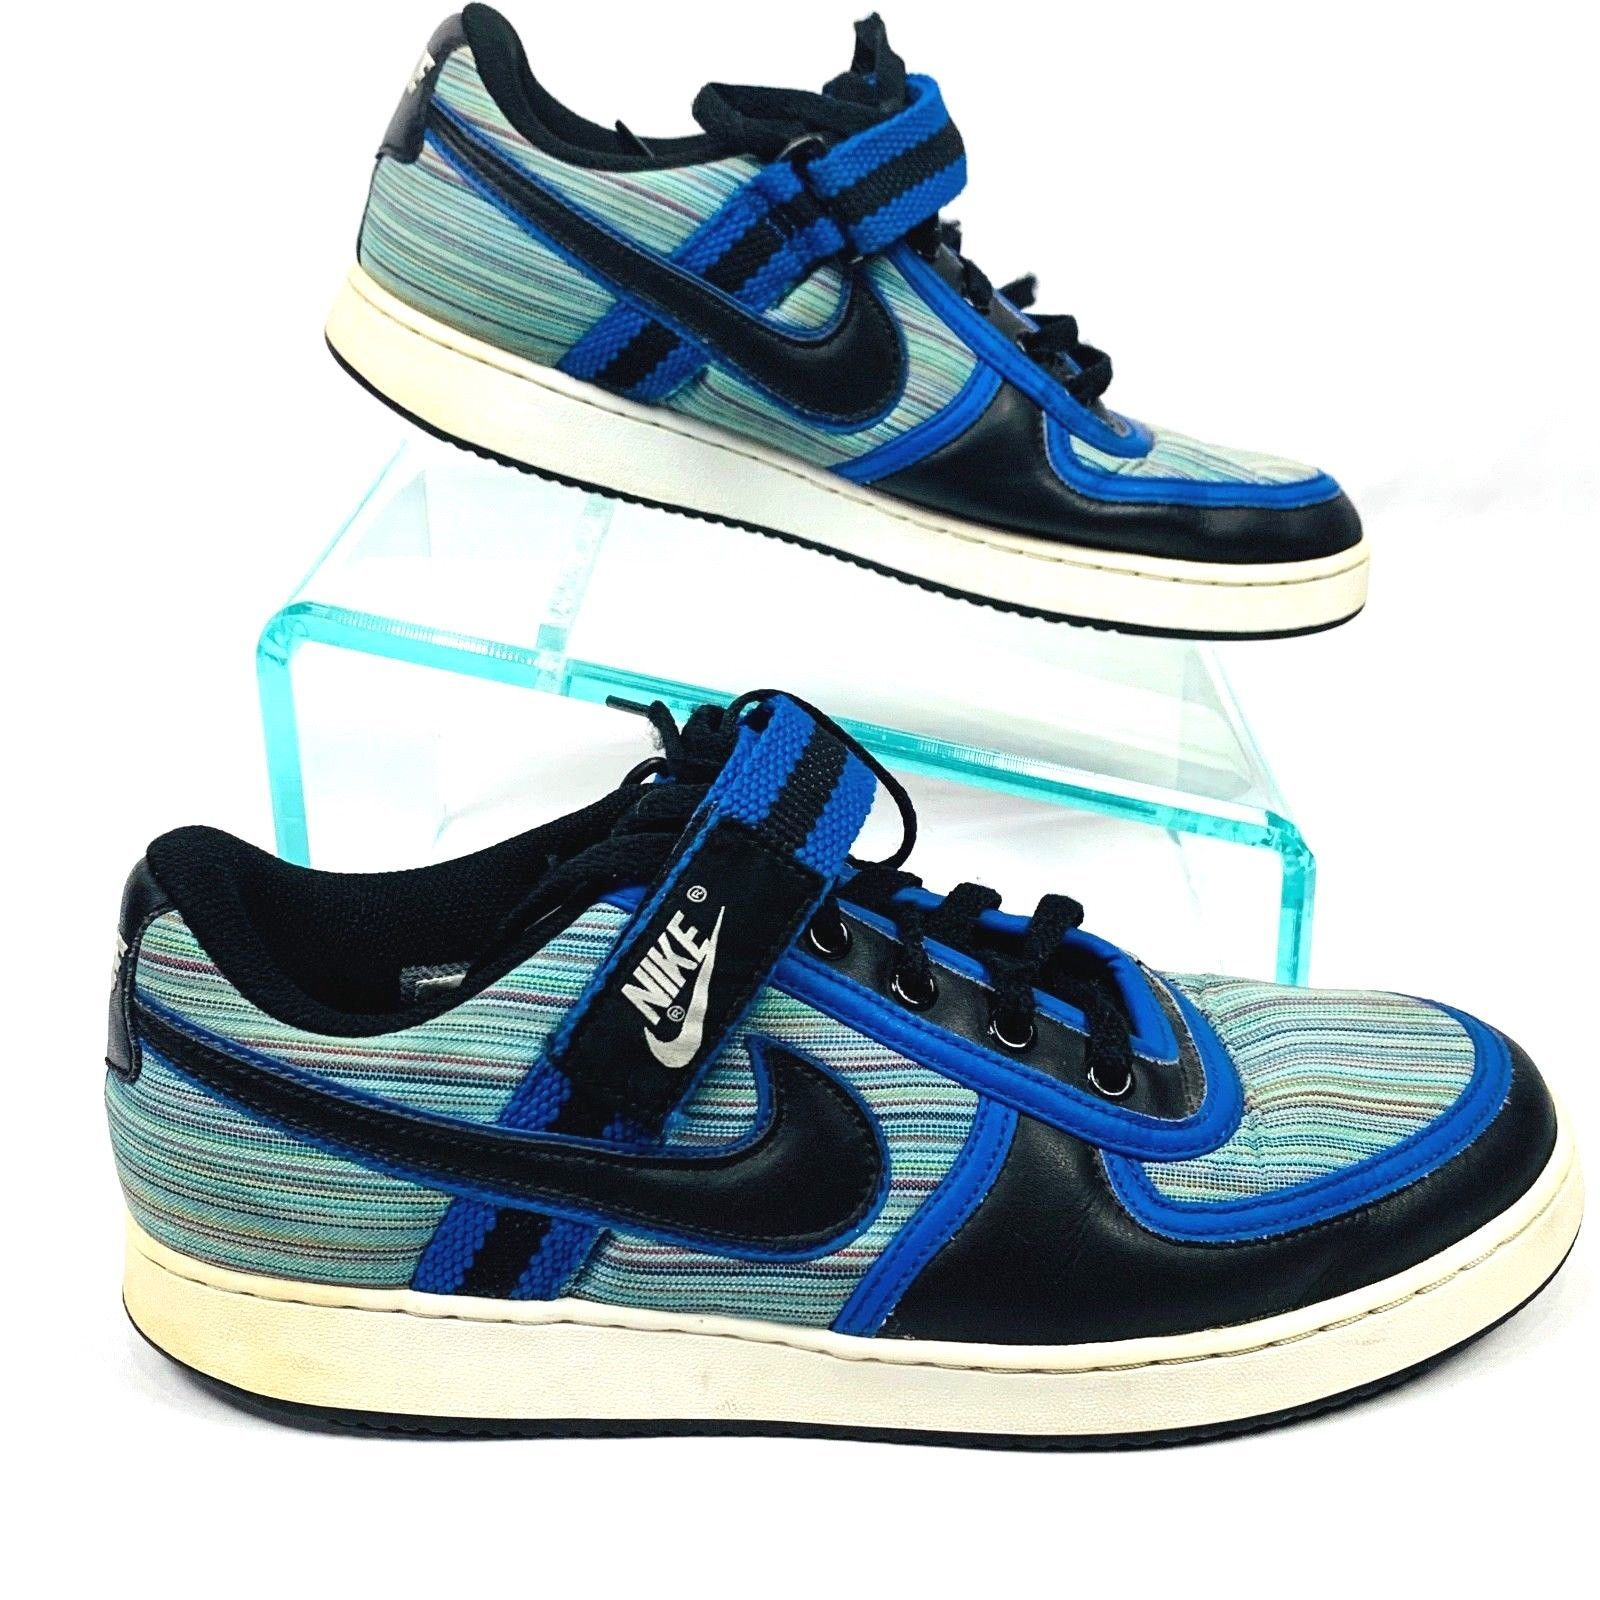 07d6c7044d9 Nike Men.s 9.5 M Blue Gary w  Sticky Straps and 50 similar items. 57